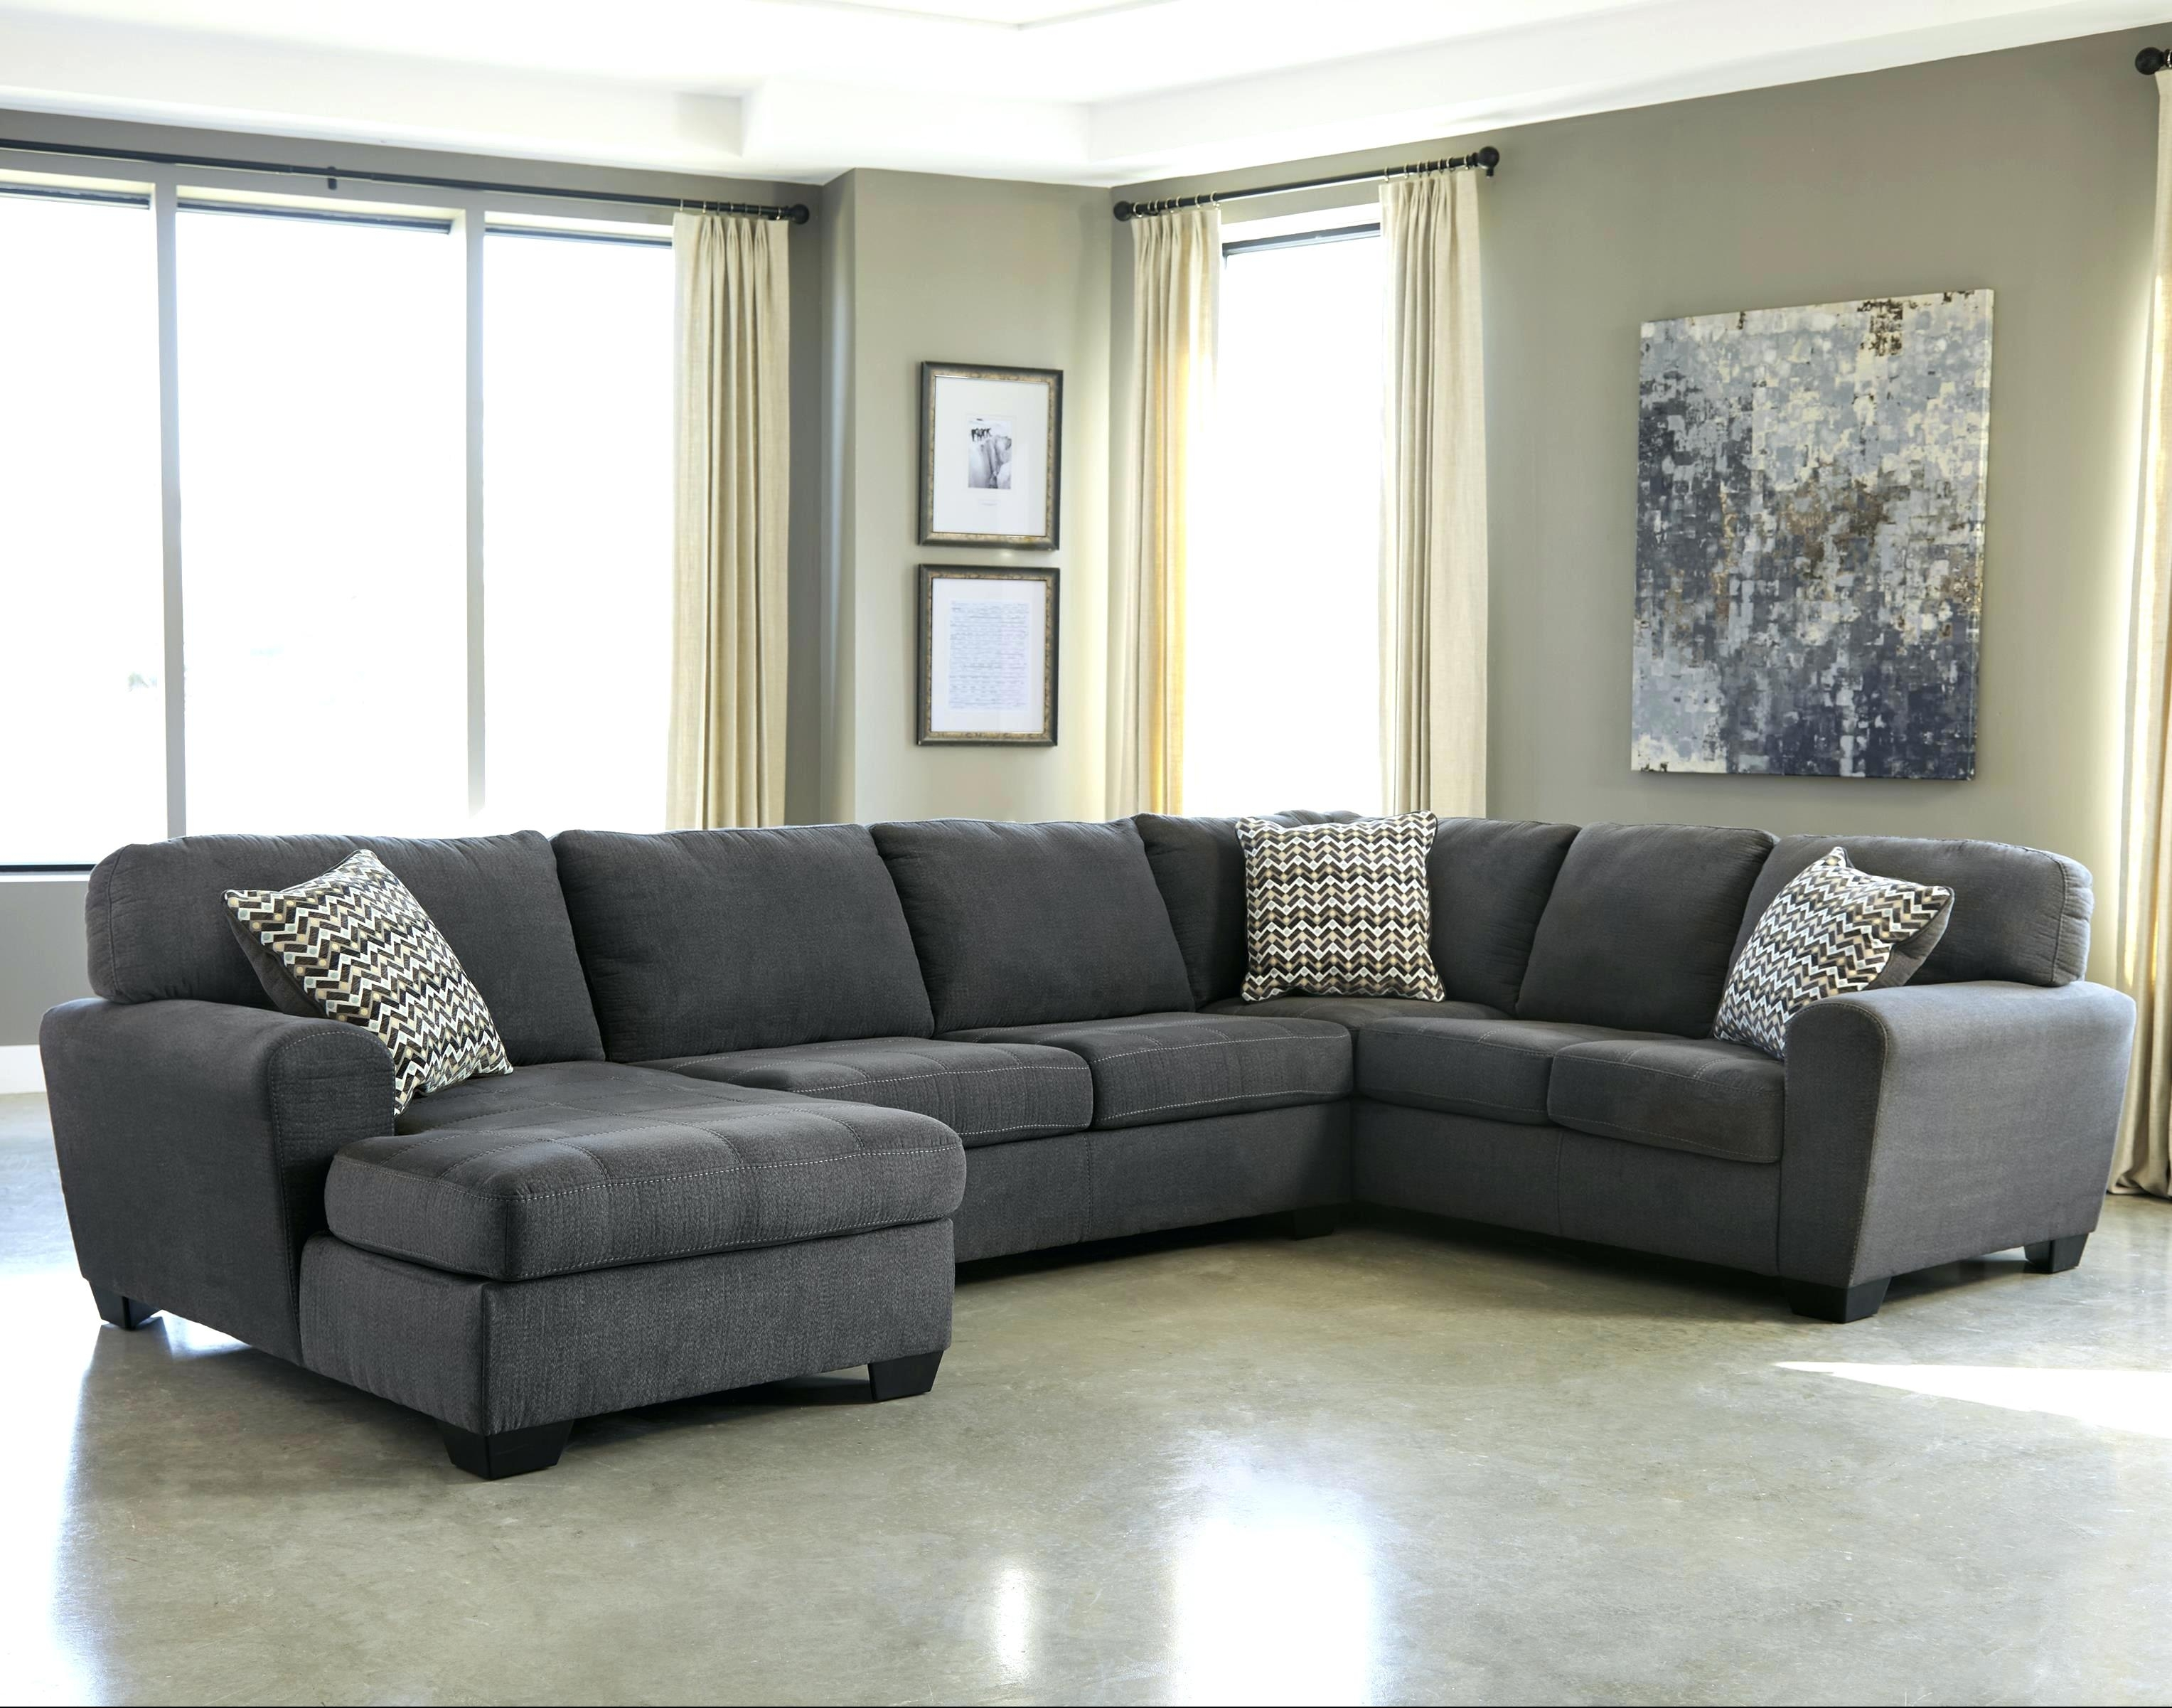 3 Piece Sectional Haven Blue Steel 3 Piece Sectional 3 Pc Reclining Intended For Haven 3 Piece Sectionals (Image 2 of 25)